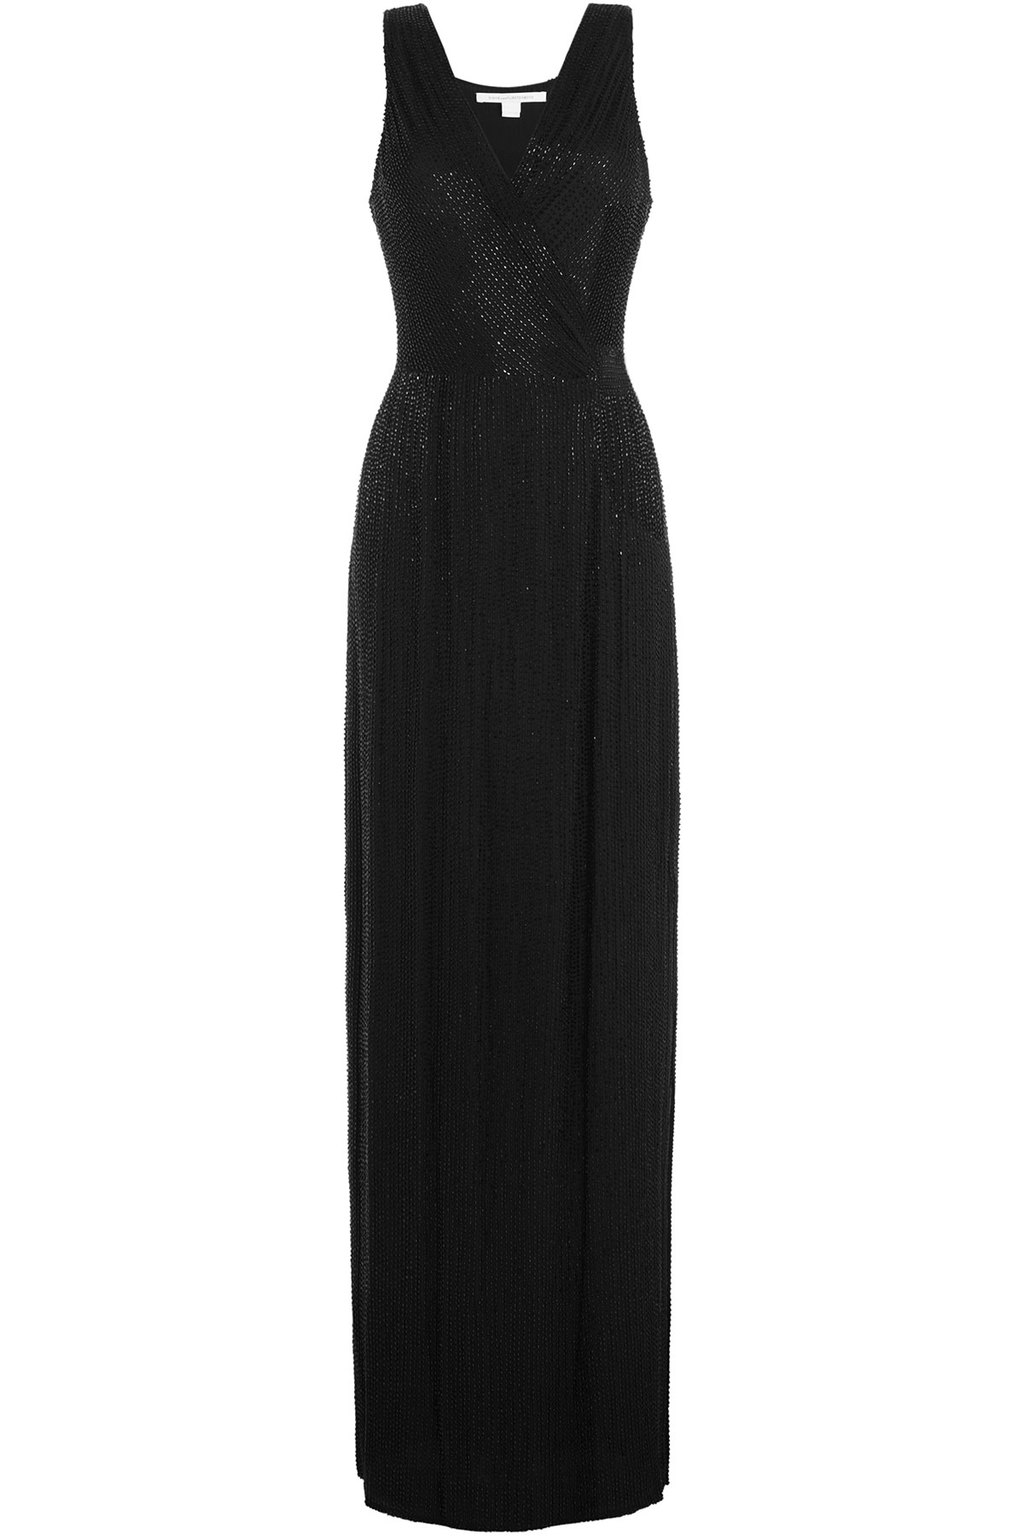 Embellished Silk Evening Gown Black - style: ballgown; neckline: low v-neck; sleeve style: standard vest straps/shoulder straps; pattern: plain; waist detail: fitted waist; predominant colour: black; occasions: evening, occasion; length: floor length; fit: fitted at waist & bust; fibres: silk - 100%; sleeve length: sleeveless; texture group: structured shiny - satin/tafetta/silk etc.; season: a/w 2015; wardrobe: event